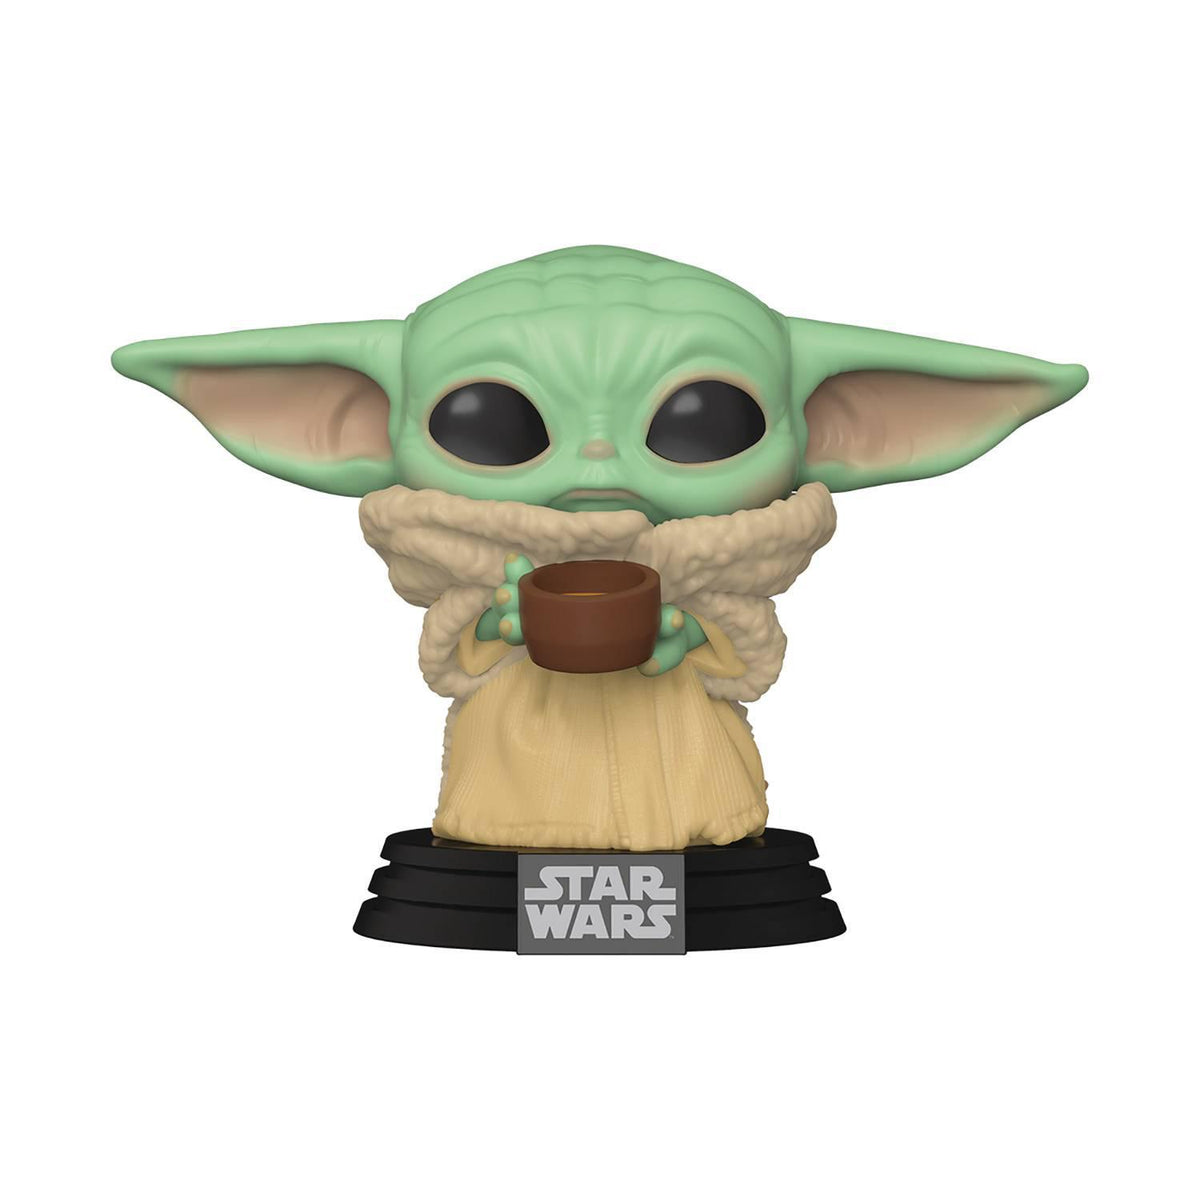 STAR WARS FUNKO POP - THE MANDALORIAN - THE CHILD WITH CUP VINYL FIGURE